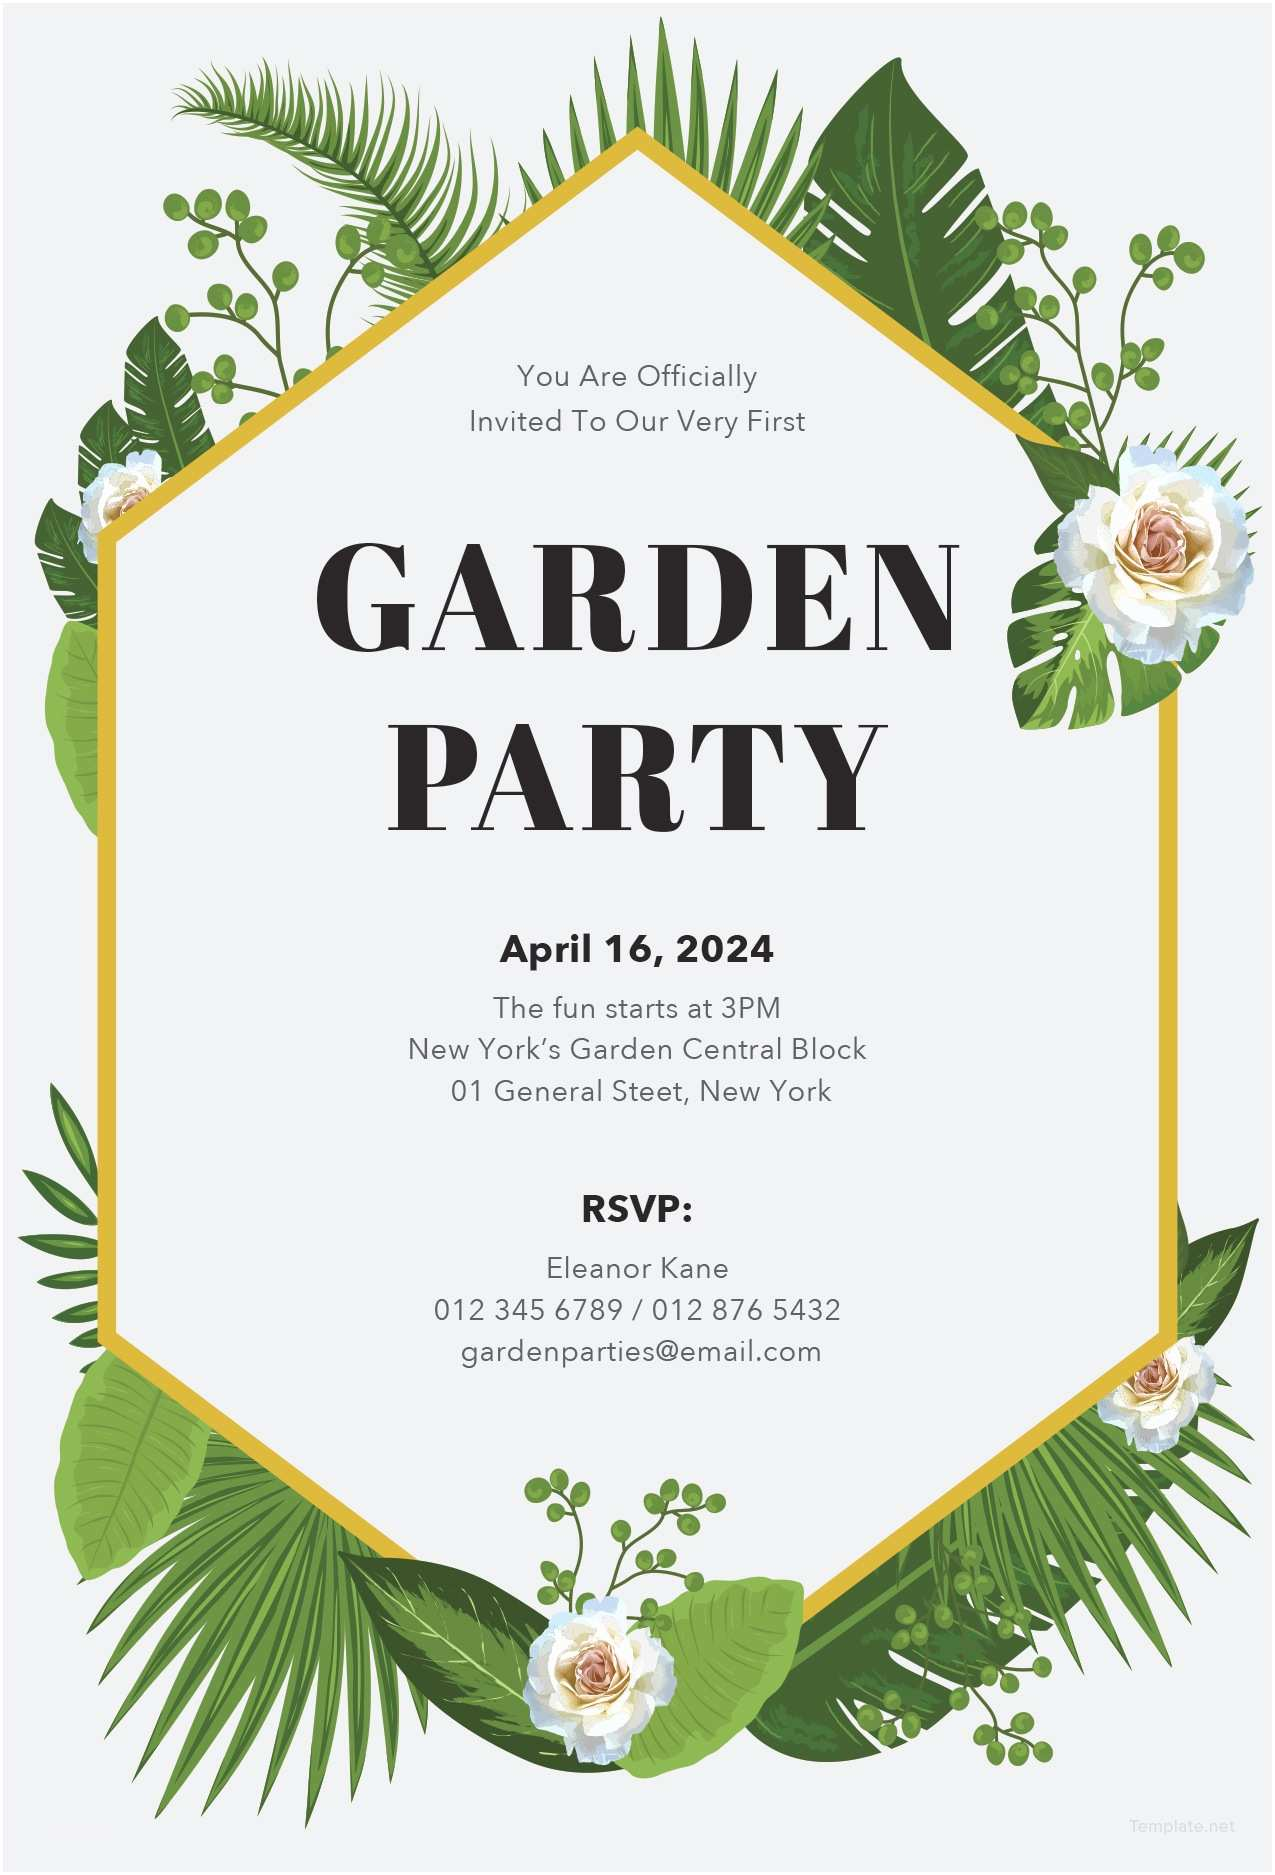 Garden Party Invitations Invitation Template Garden Party Image Collections